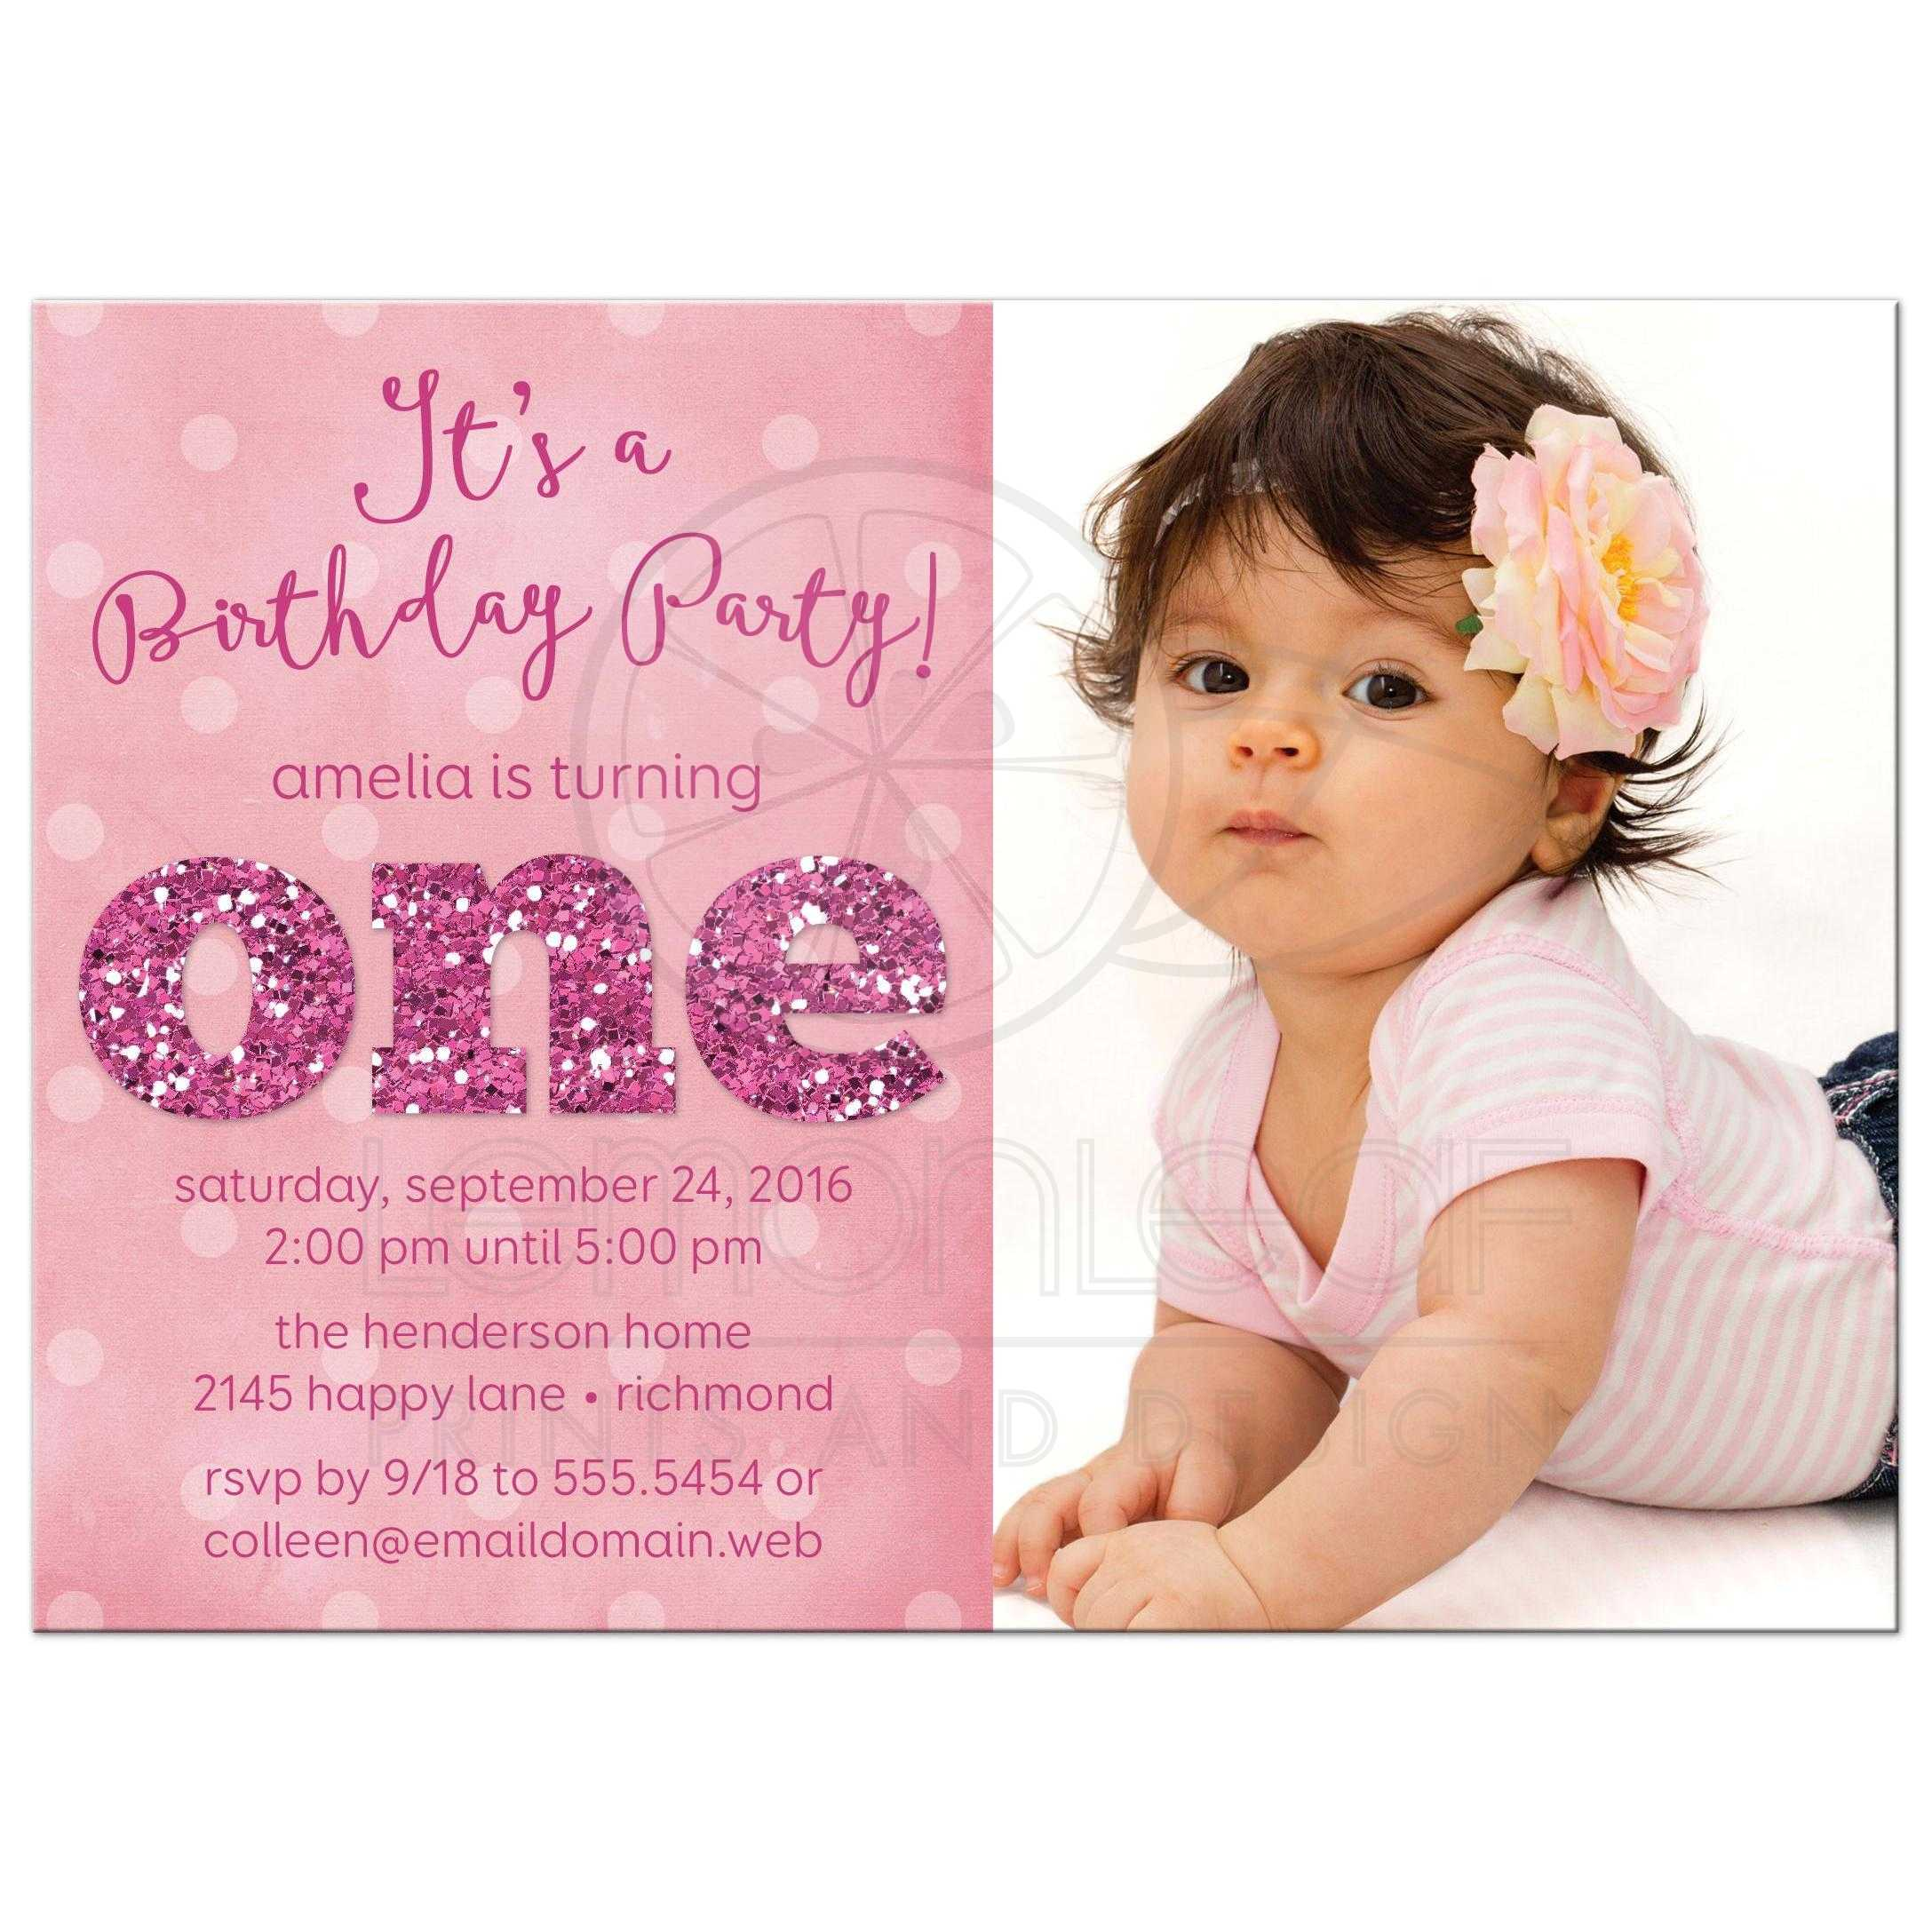 first birthday invitation card design ; first-birthday-party-invitation-templates-design-inspiration-Birthday-invitations-7